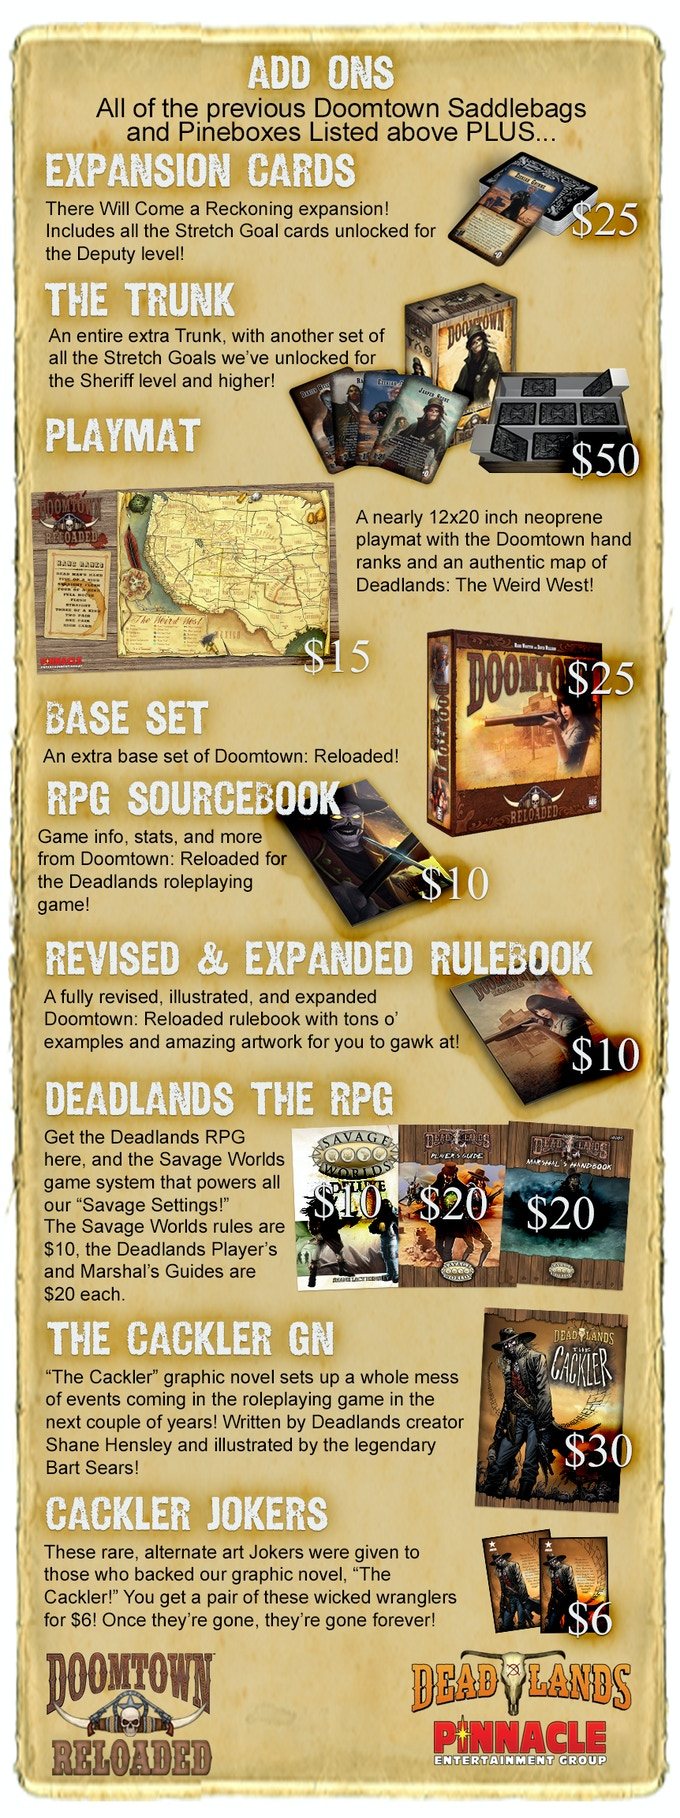 Don't forget the Doomtown: Reloaded Saddlebags and Pine Boxes above, all at a SUPER special discount just for this Kickstarter!